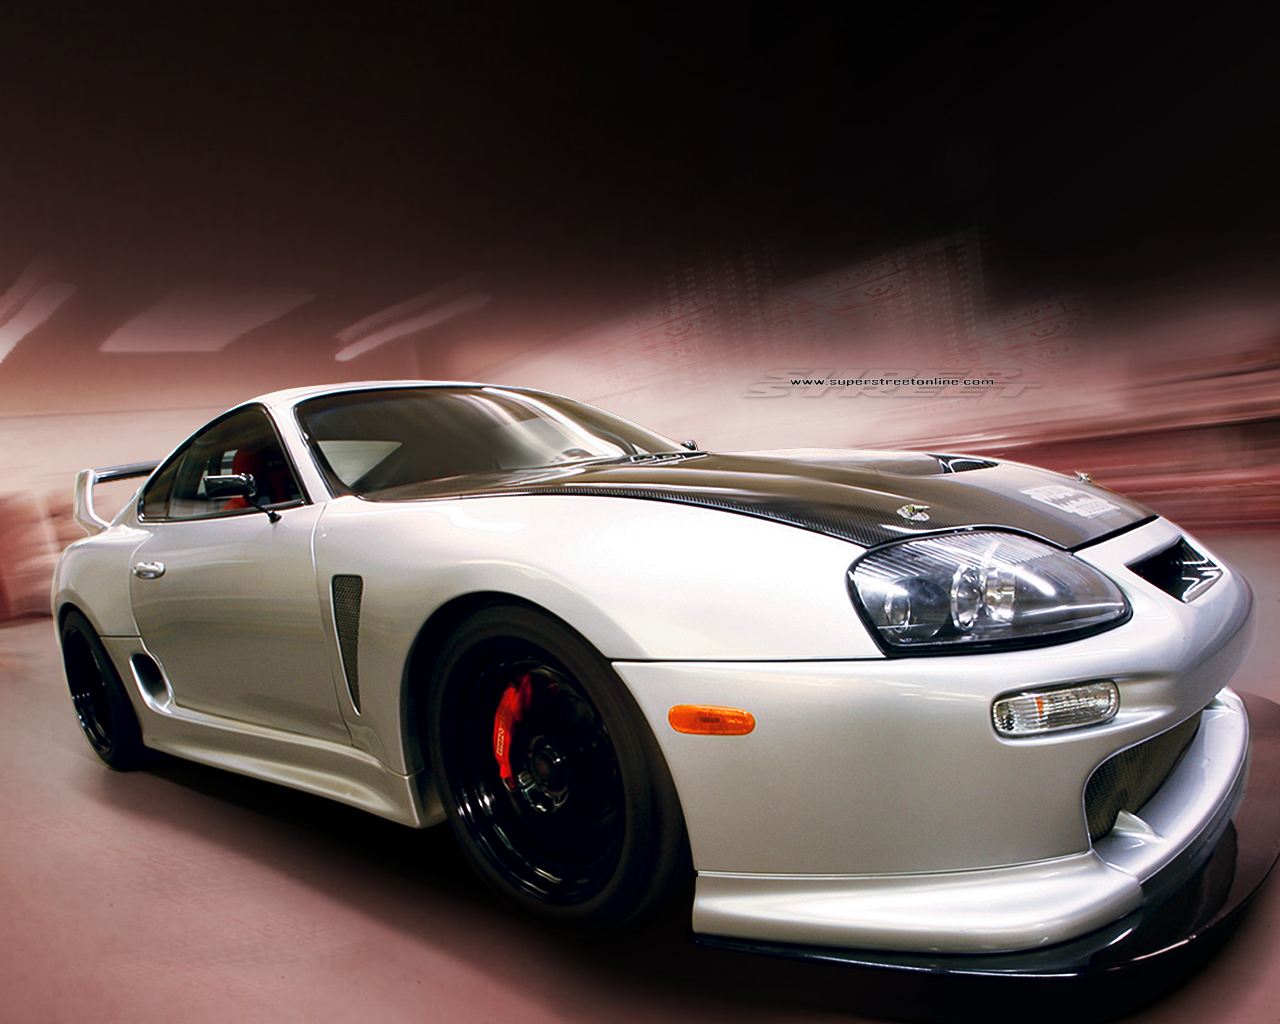 Luxury Cars Toyota Supra Cars Wallpaper 1280x1024